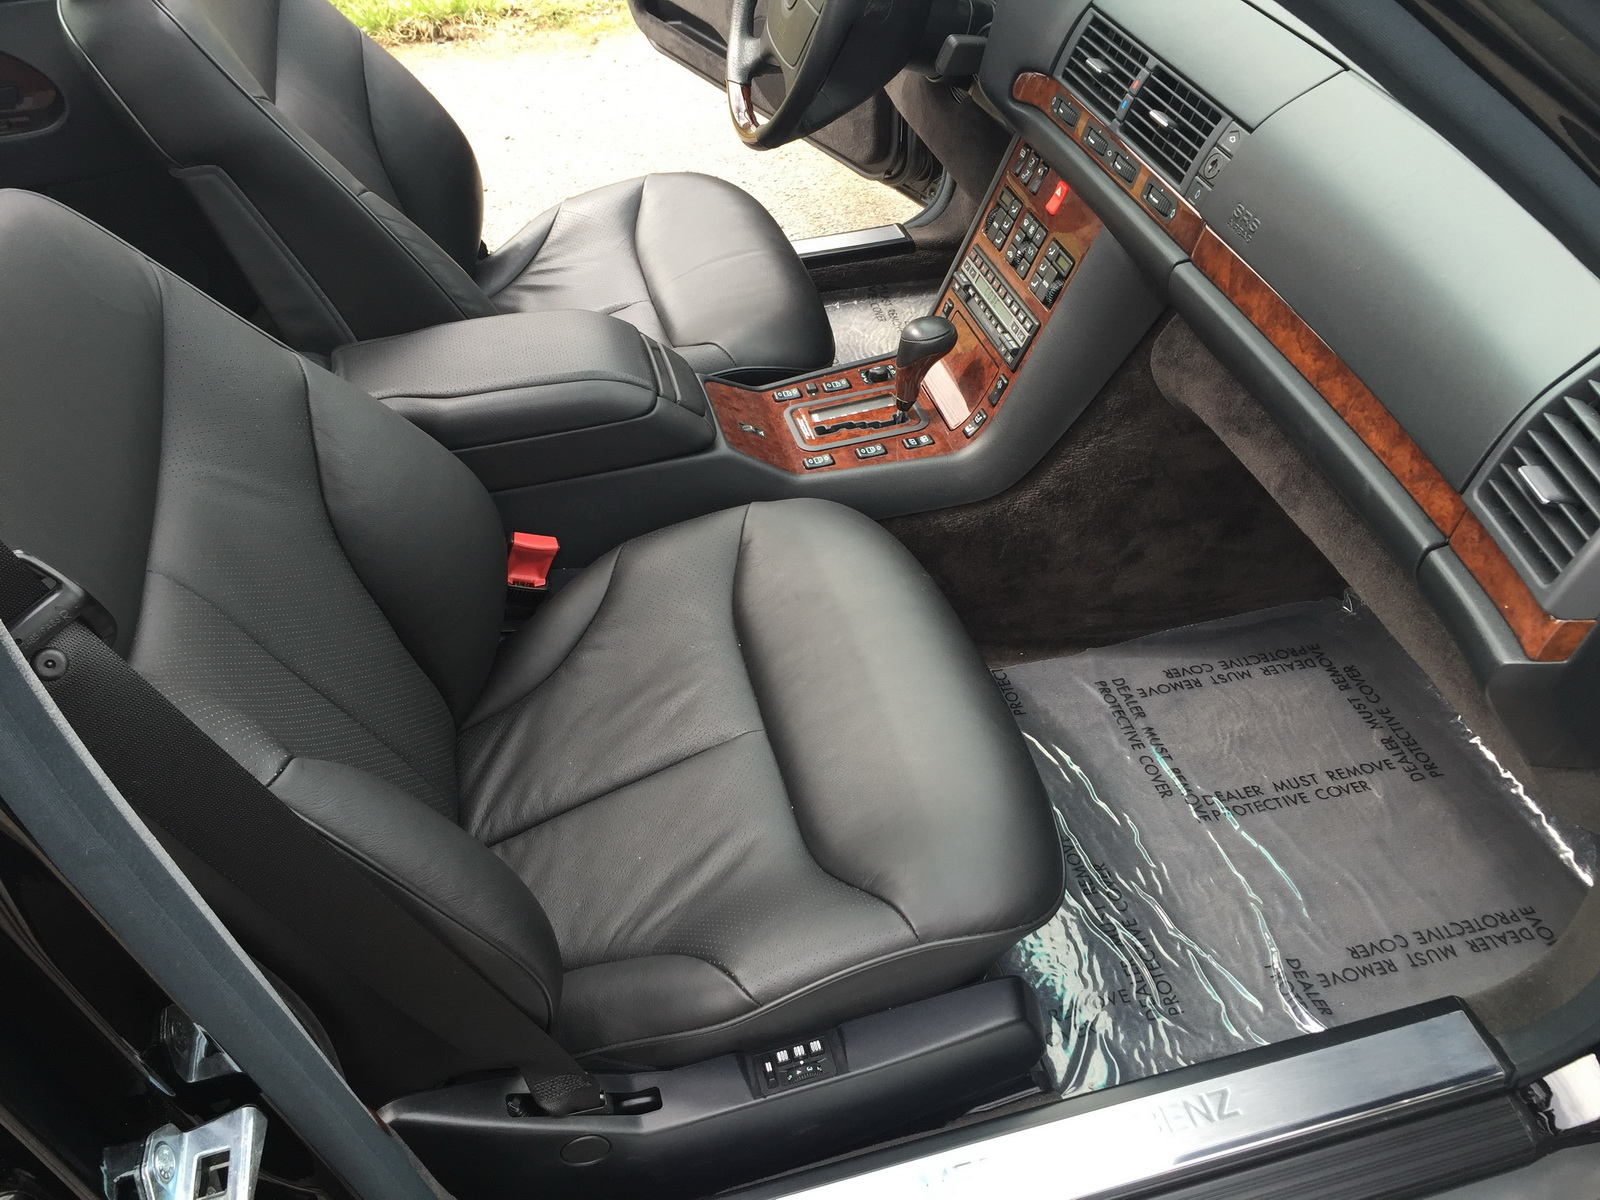 Pair Of Unused Mercedes Benz S Class W140s Up For Sale For